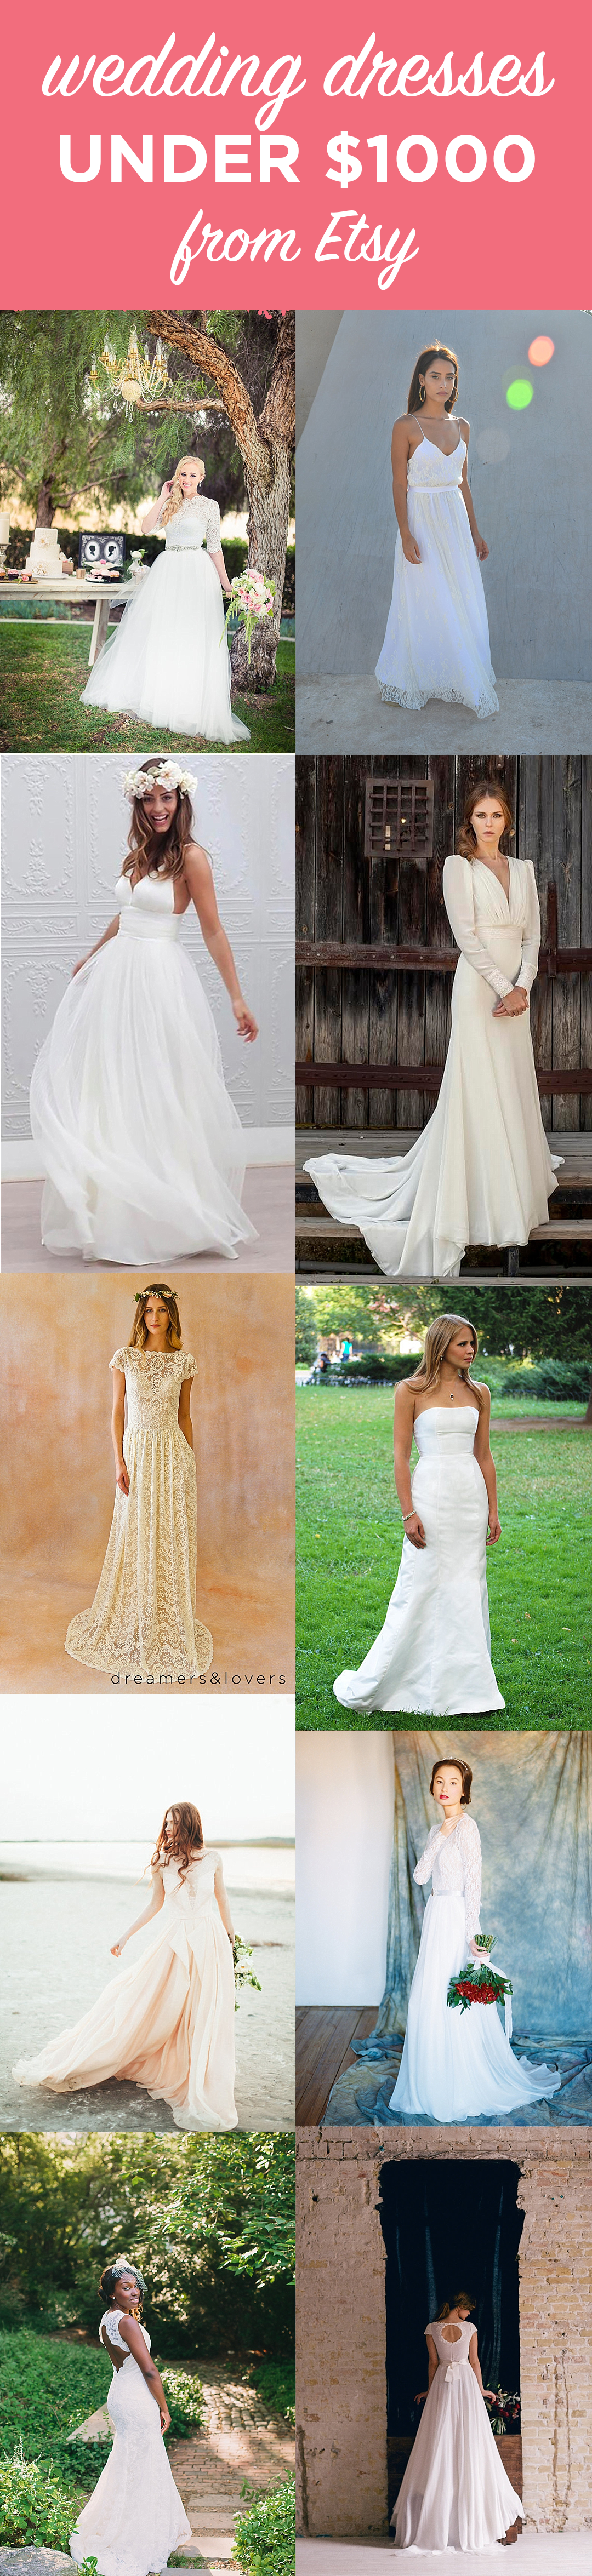 Etsy Wedding Dress Options under $1000